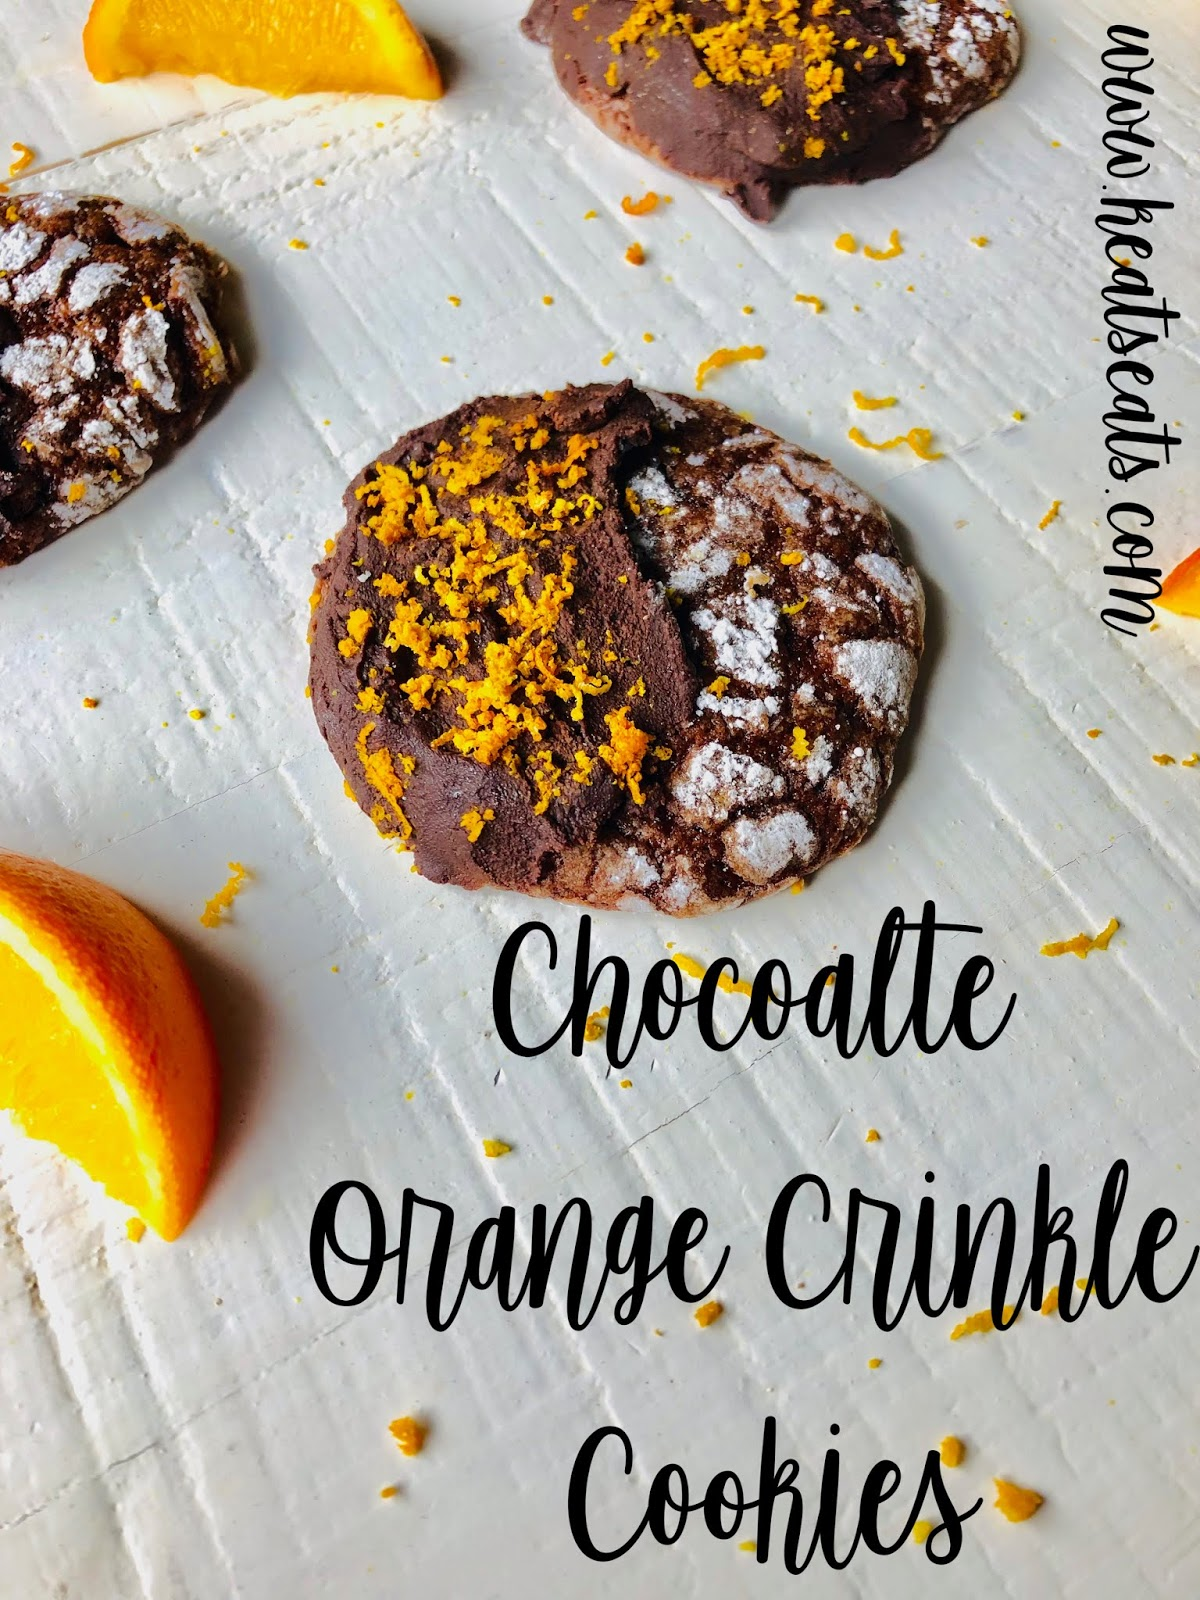 Chocolate Orange Crinkle Cookies